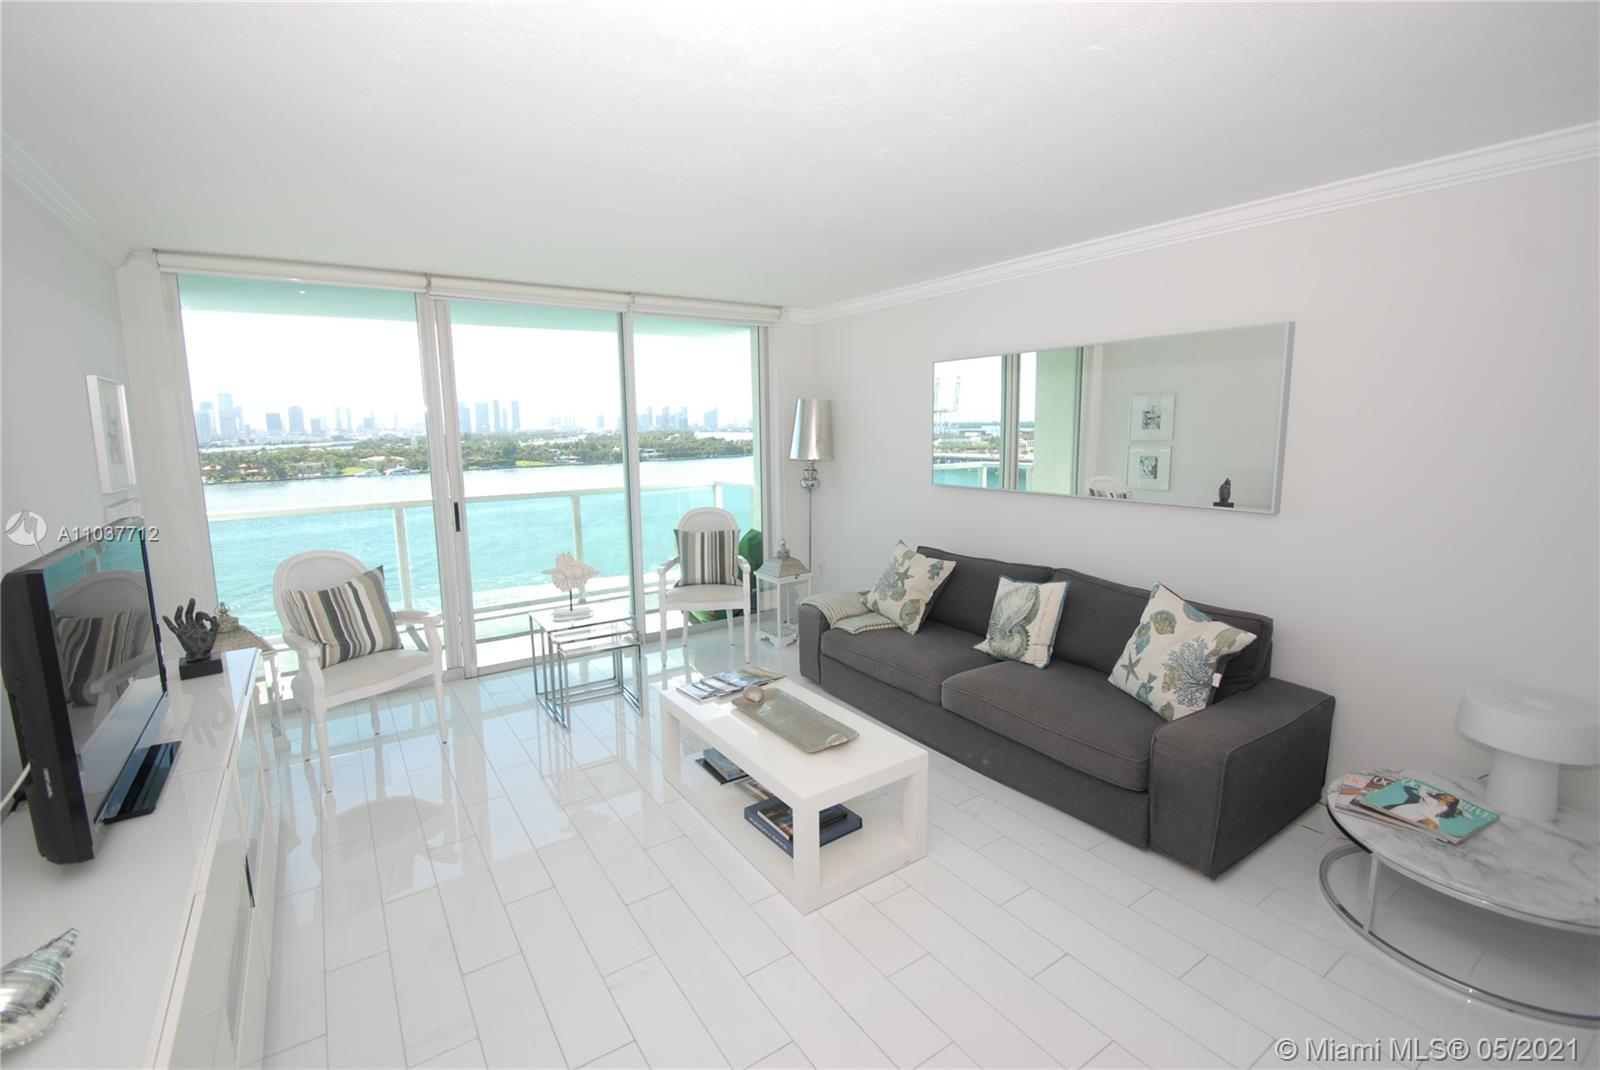 The Floridian #1405 - 650 West Ave #1405, Miami Beach, FL 33139